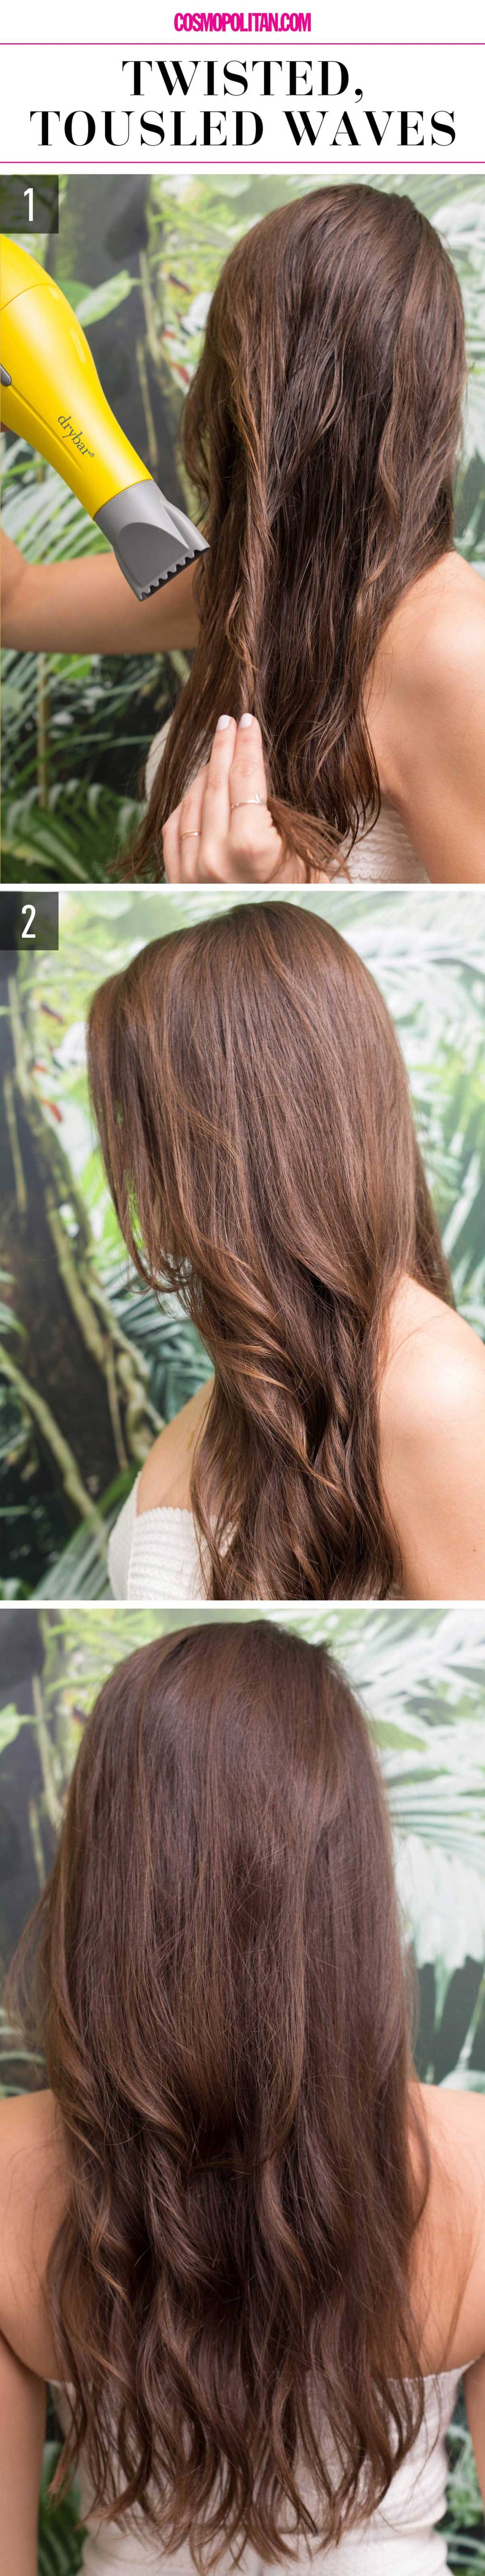 Twisted, Tousled Waves